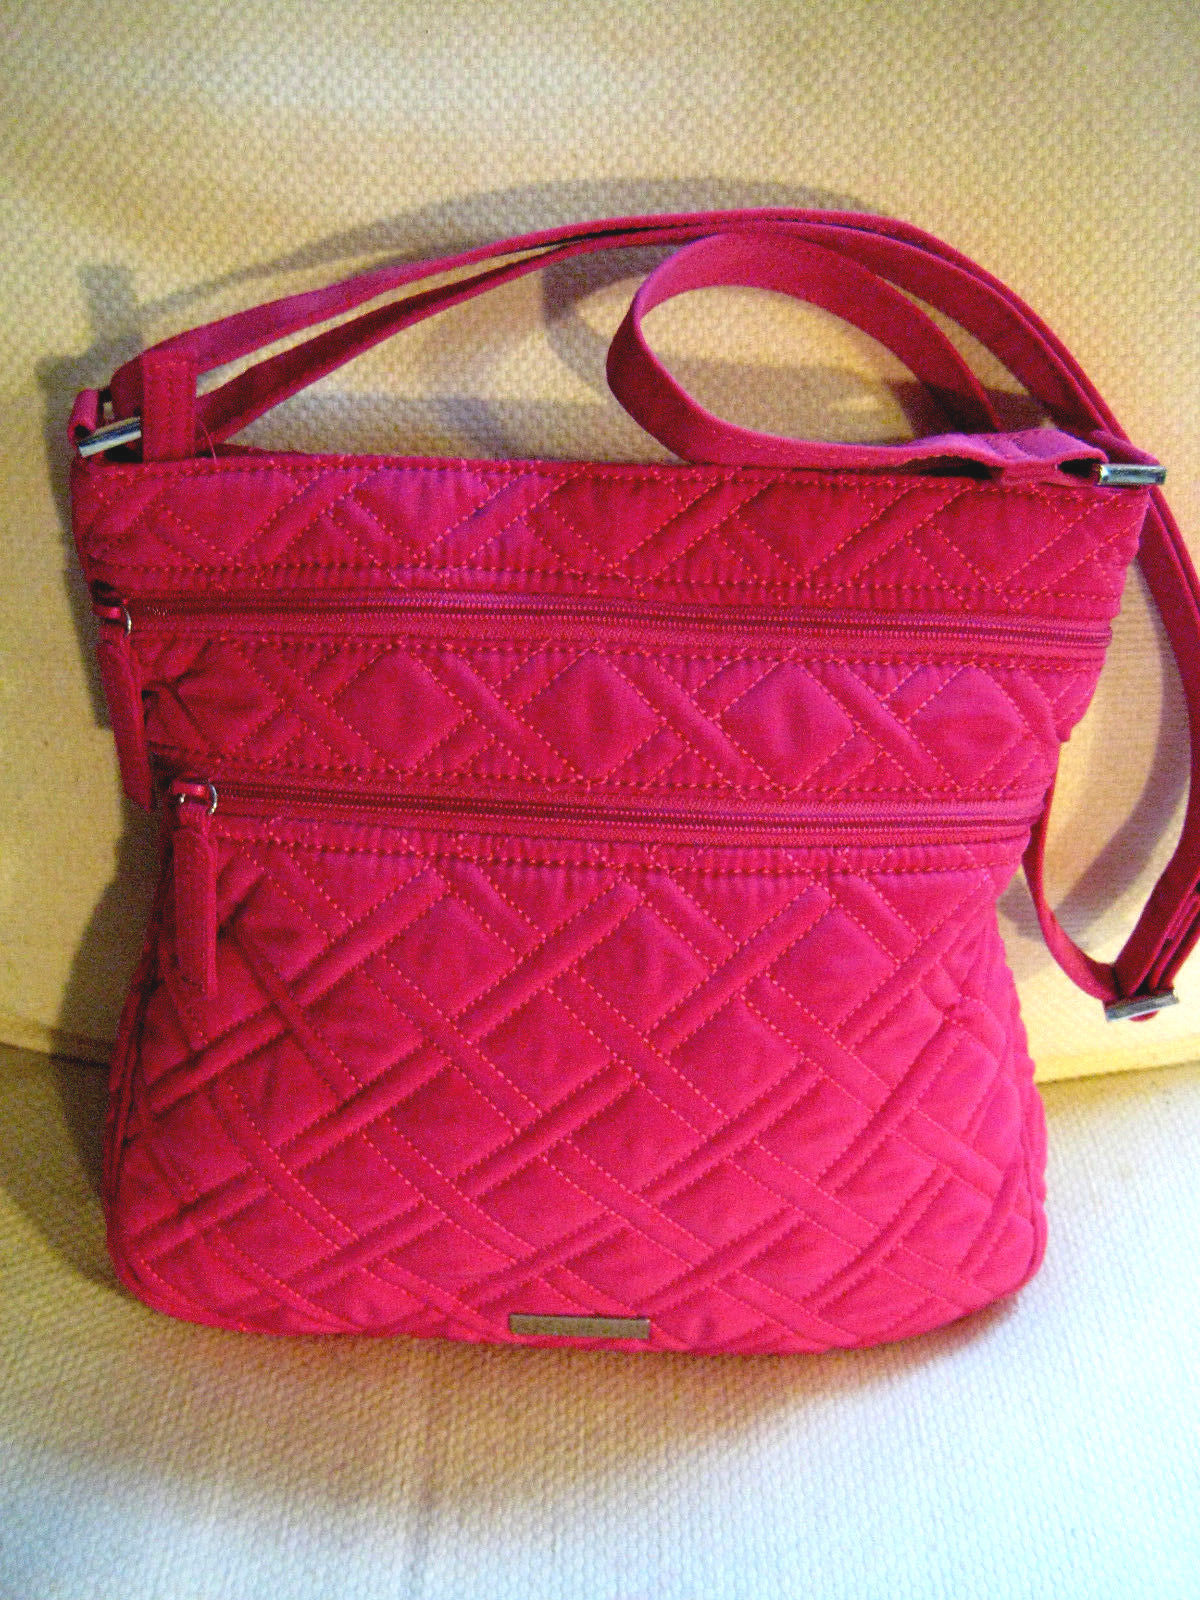 b58f591927c3 Vera Bradley Hot Pink Fuchsia Quilted Cotton and 50 similar items. S l1600